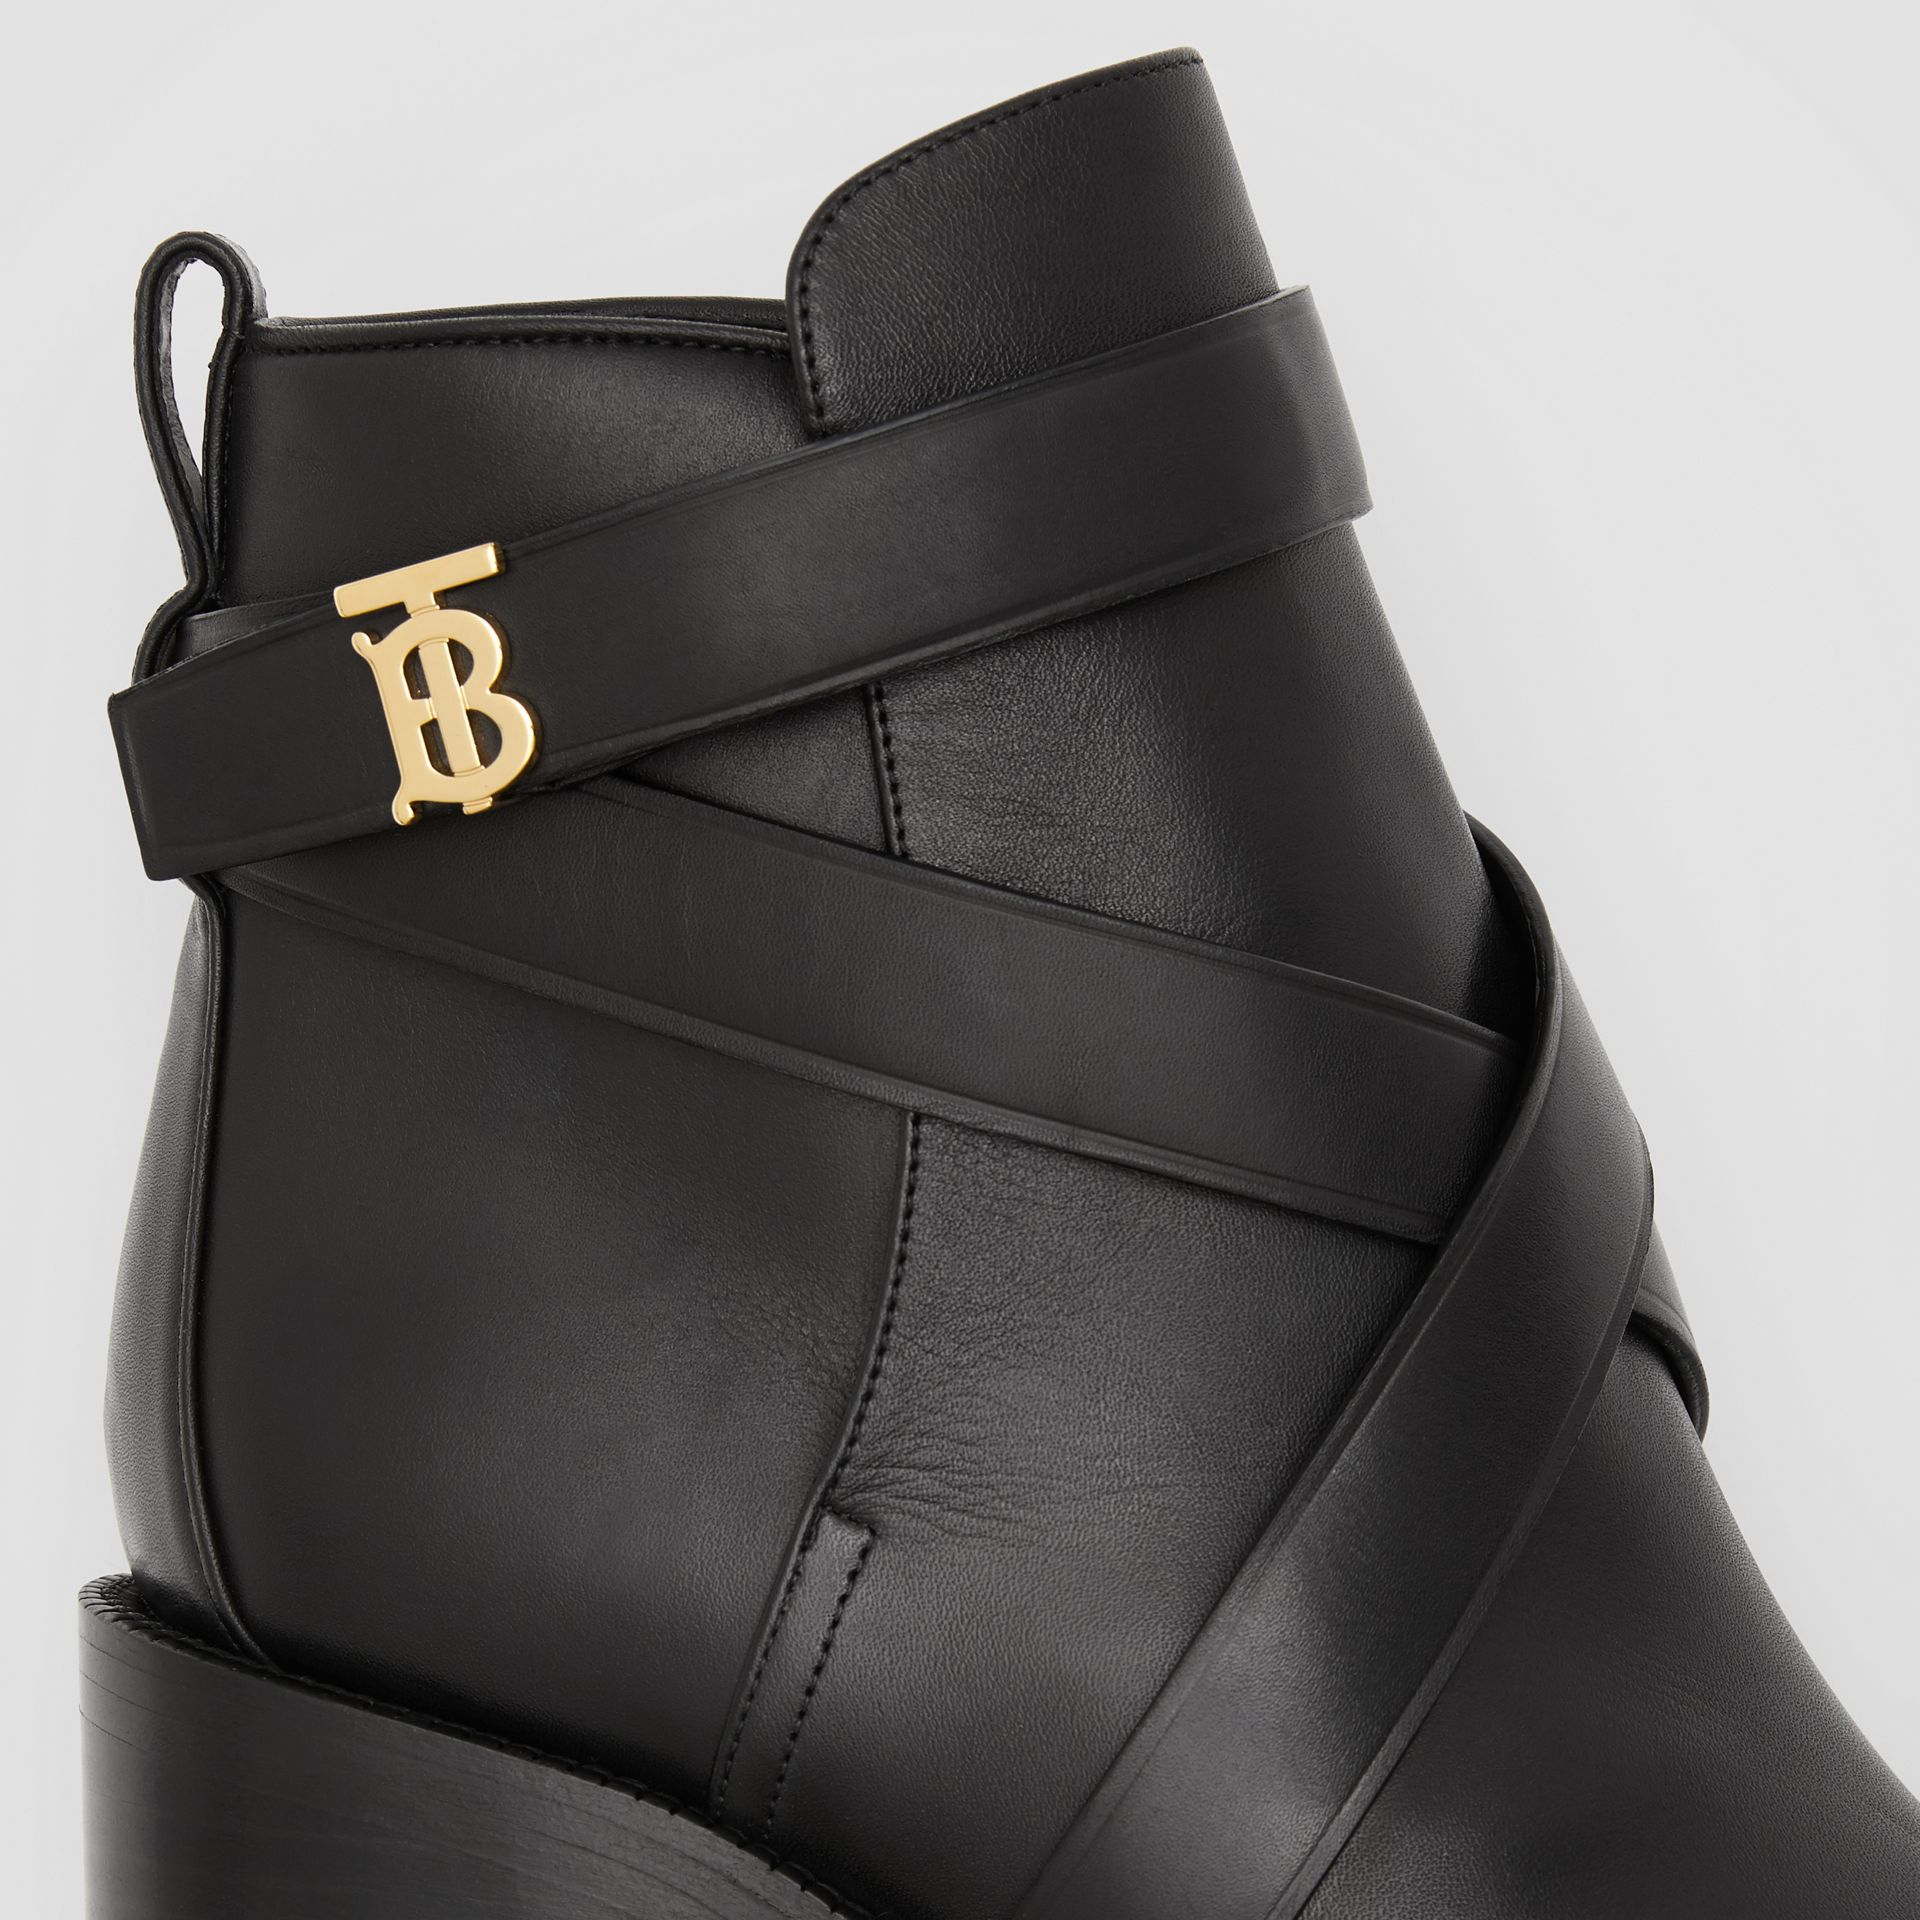 Bottines en cuir Monogram (Noir) - Femme | Burberry - photo de la galerie 1